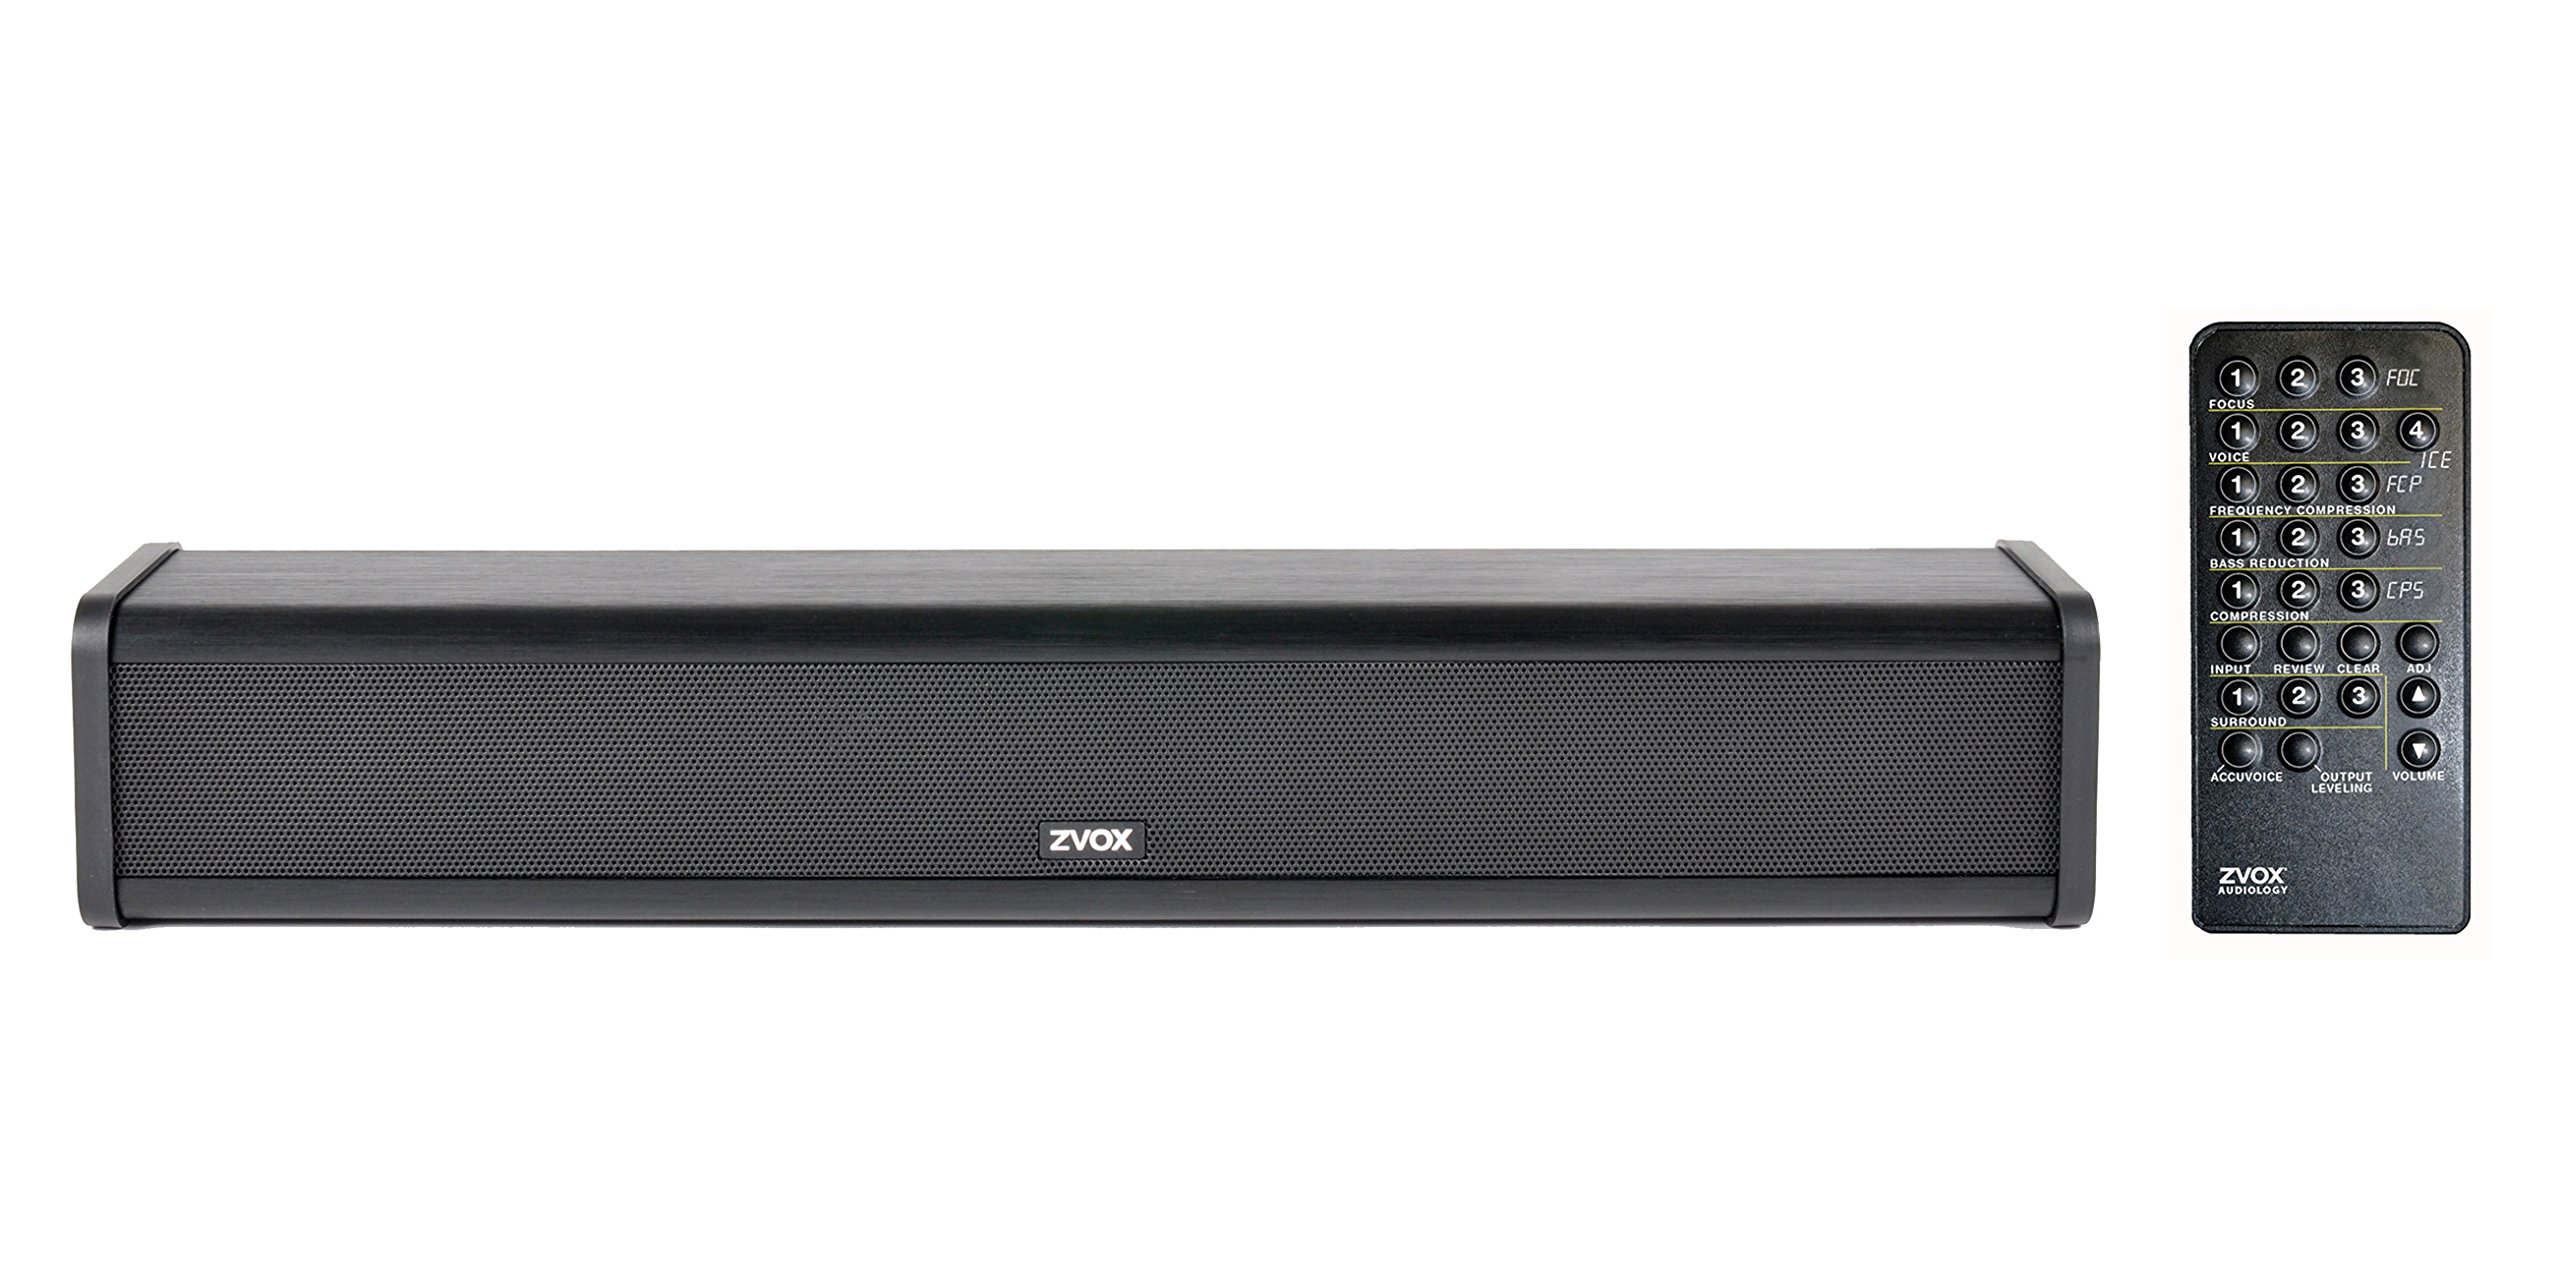 ZVOX AccuVoice AV205 Sound Bar TV Speaker With Hearing Aid Technology - Advanced Model Can Be Fine-Tuned - 30-Day Home Trial by ZVOX